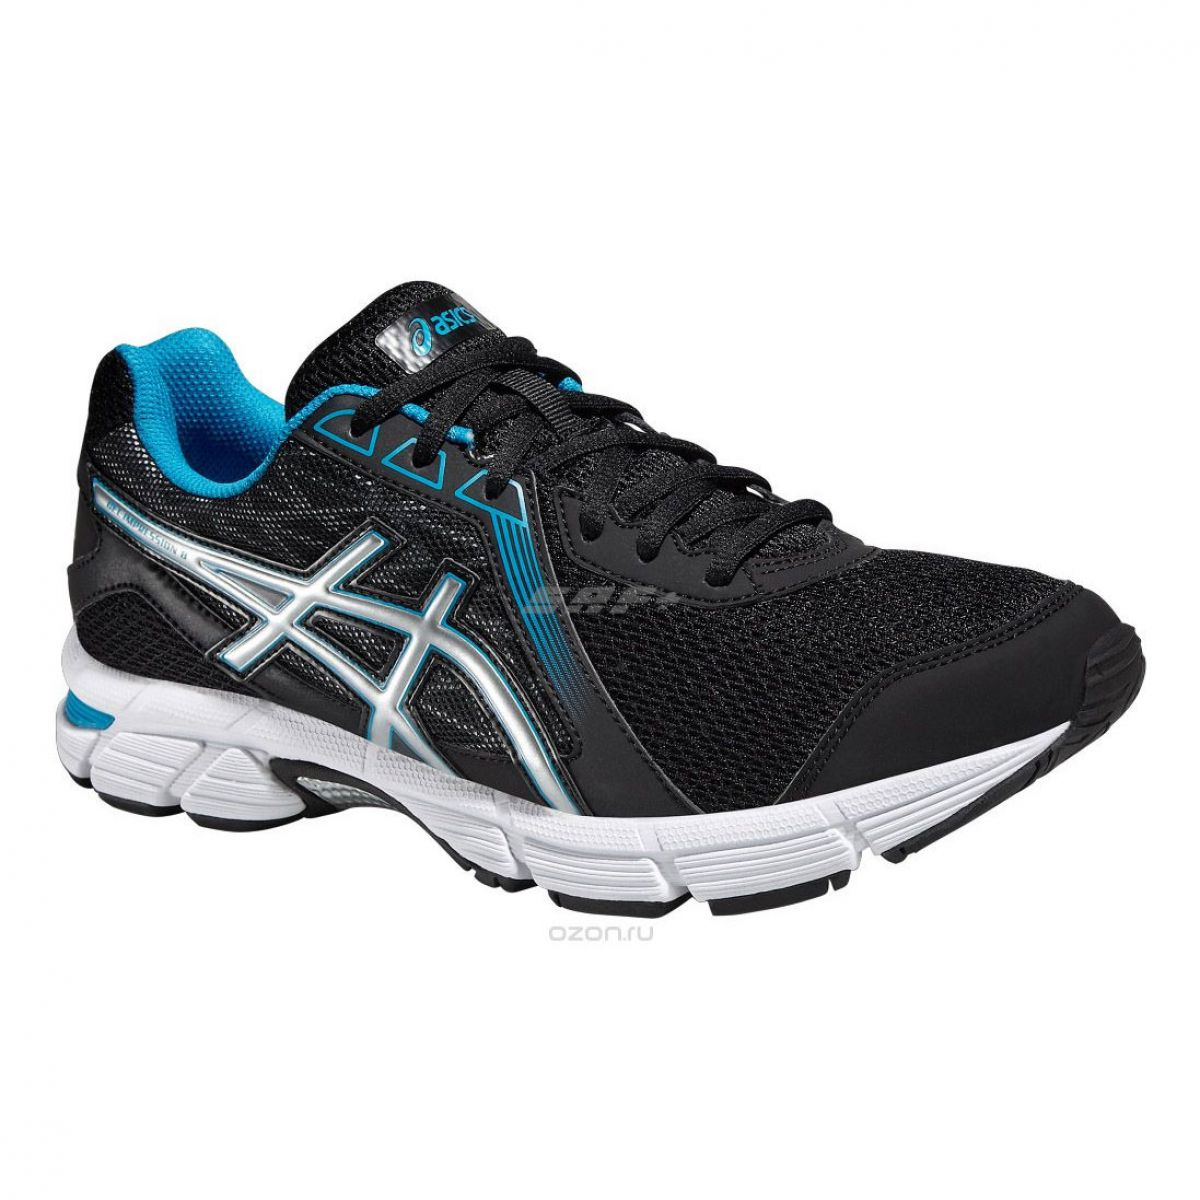 КРОССОВКИ ASICS GEL-IMPRESSION 8 SR